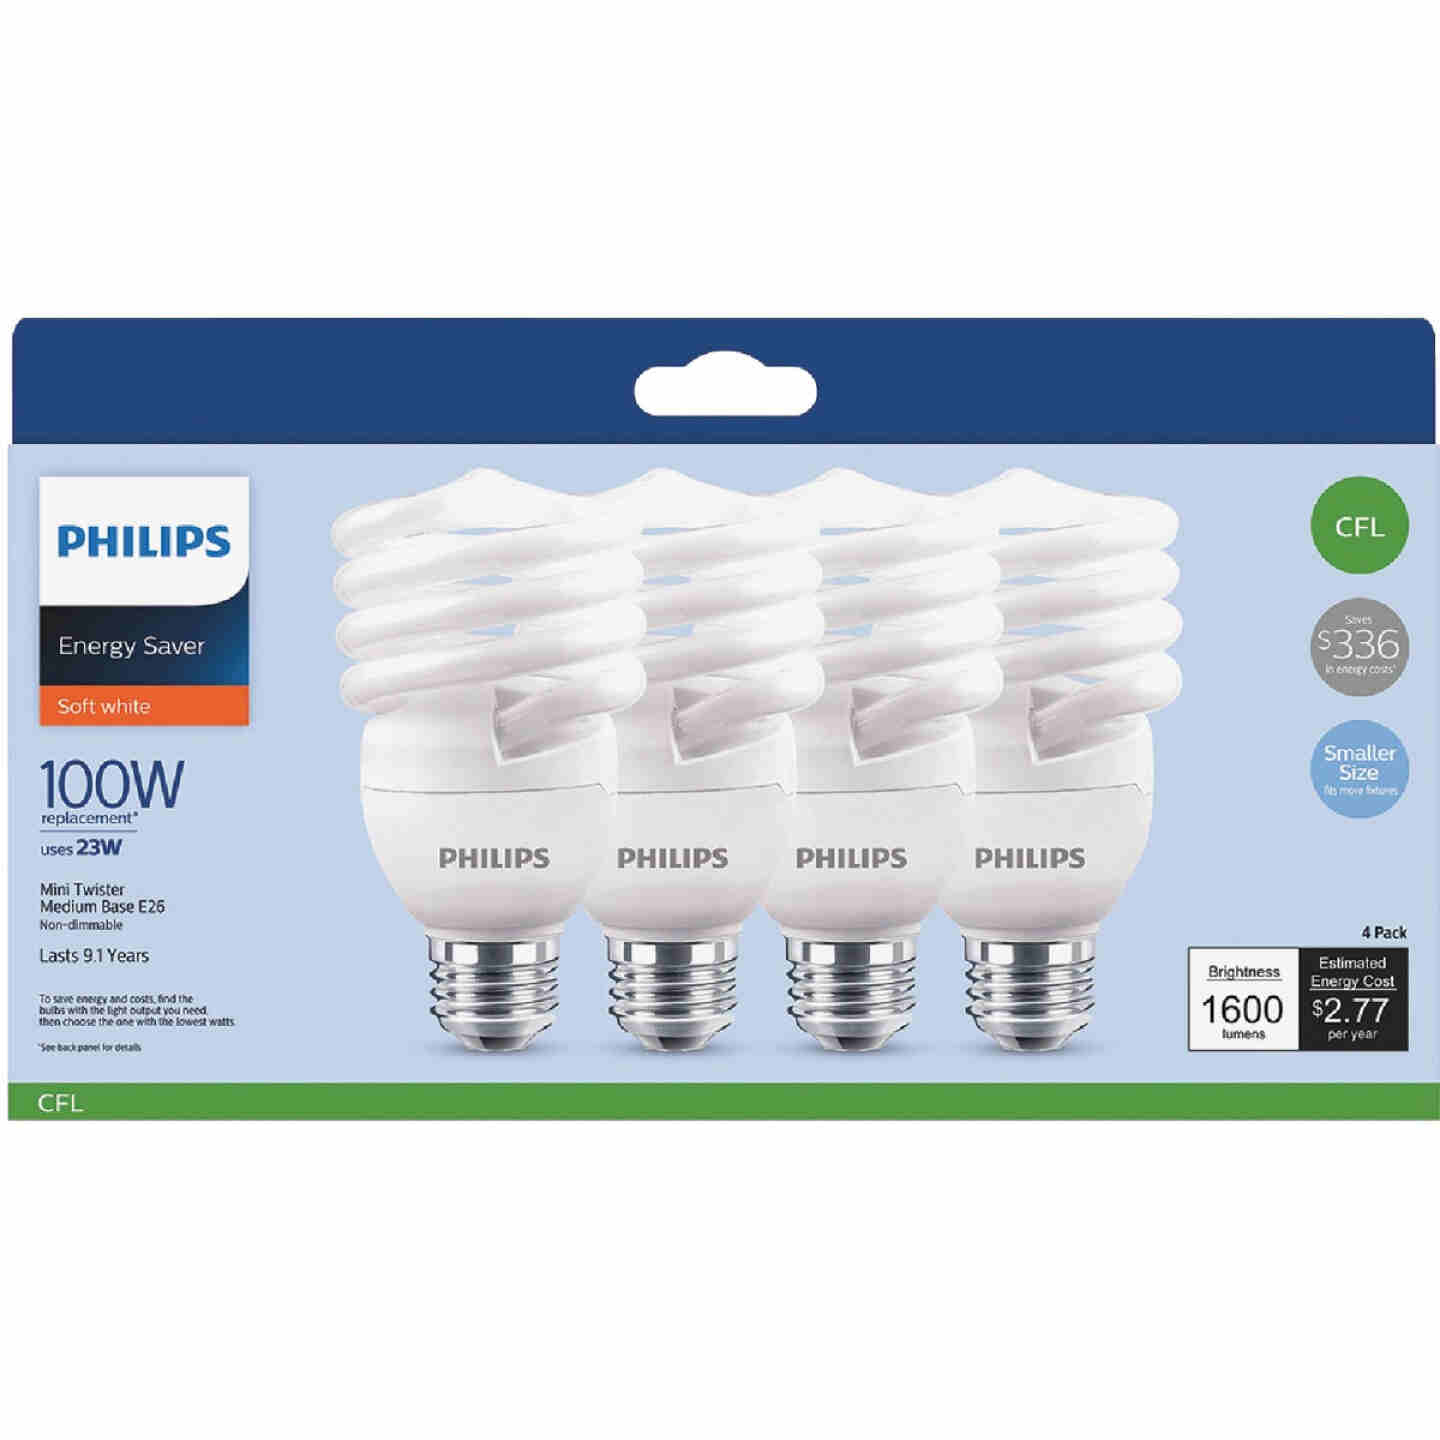 Philips Energy Saver 100W Equivalent Soft White Medium Base T2 Spiral CFL Light Bulb (4-Pack) Image 2